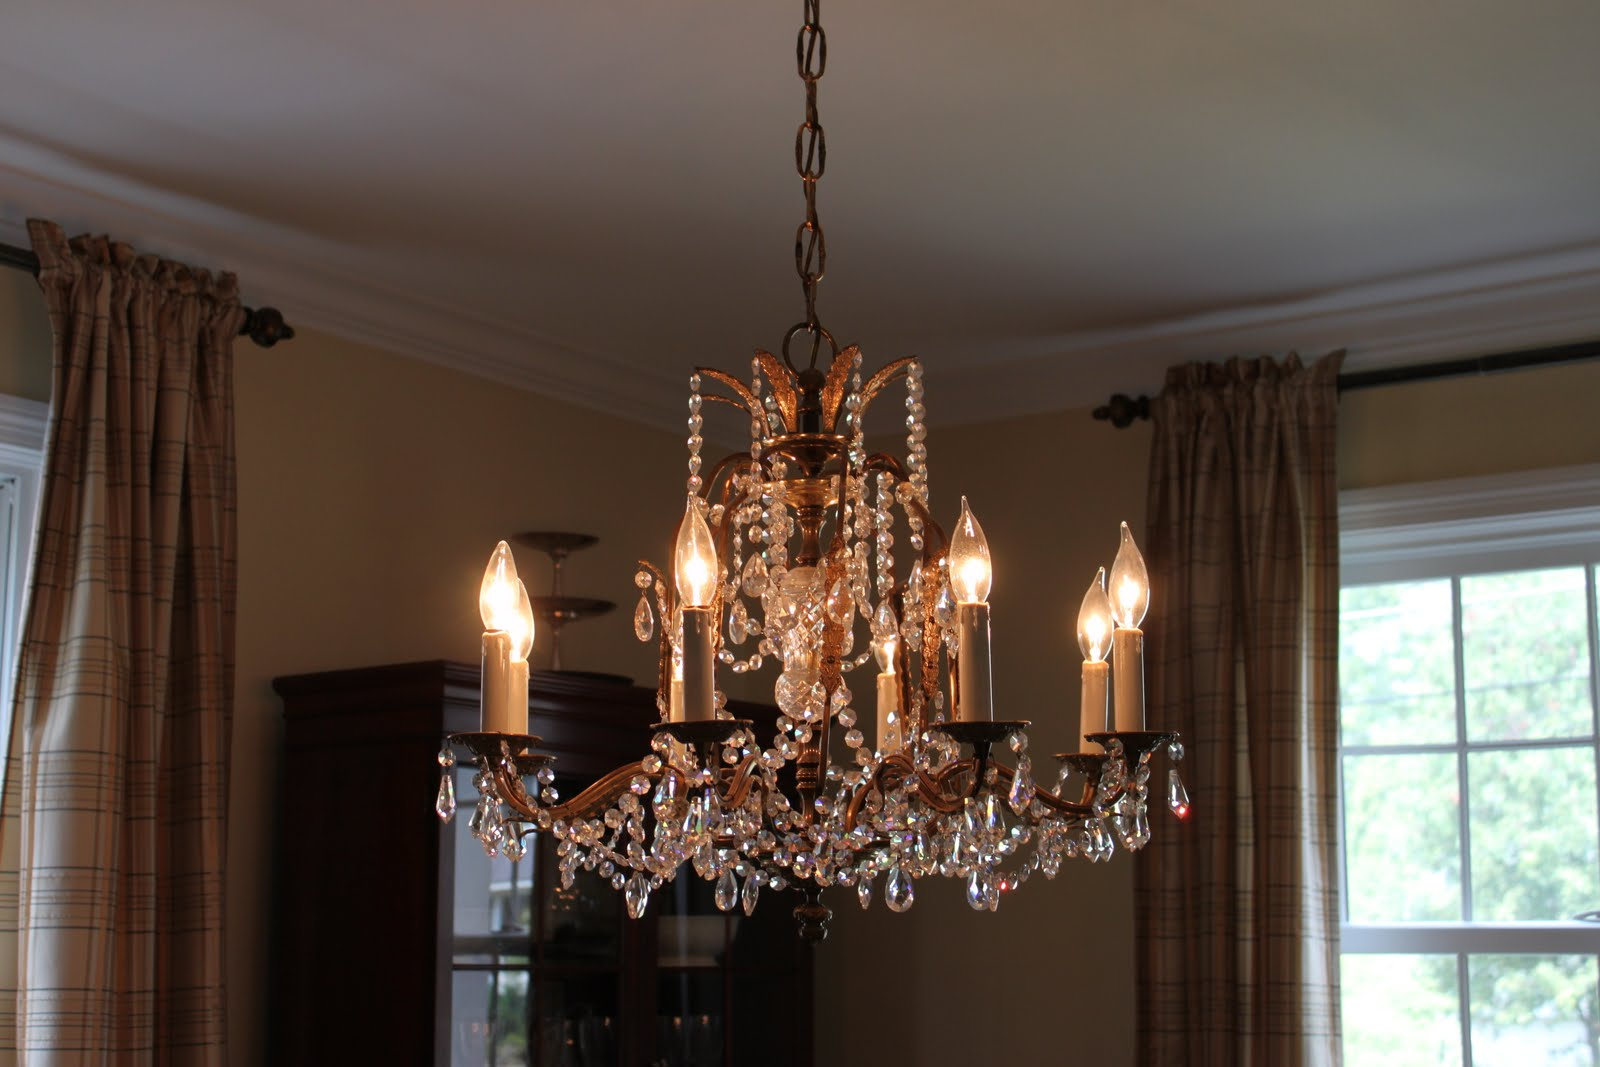 Houseography lighting things up easy chandelier upgrade chandelier bulbs and they would look really bad bare and exposed aloadofball Image collections